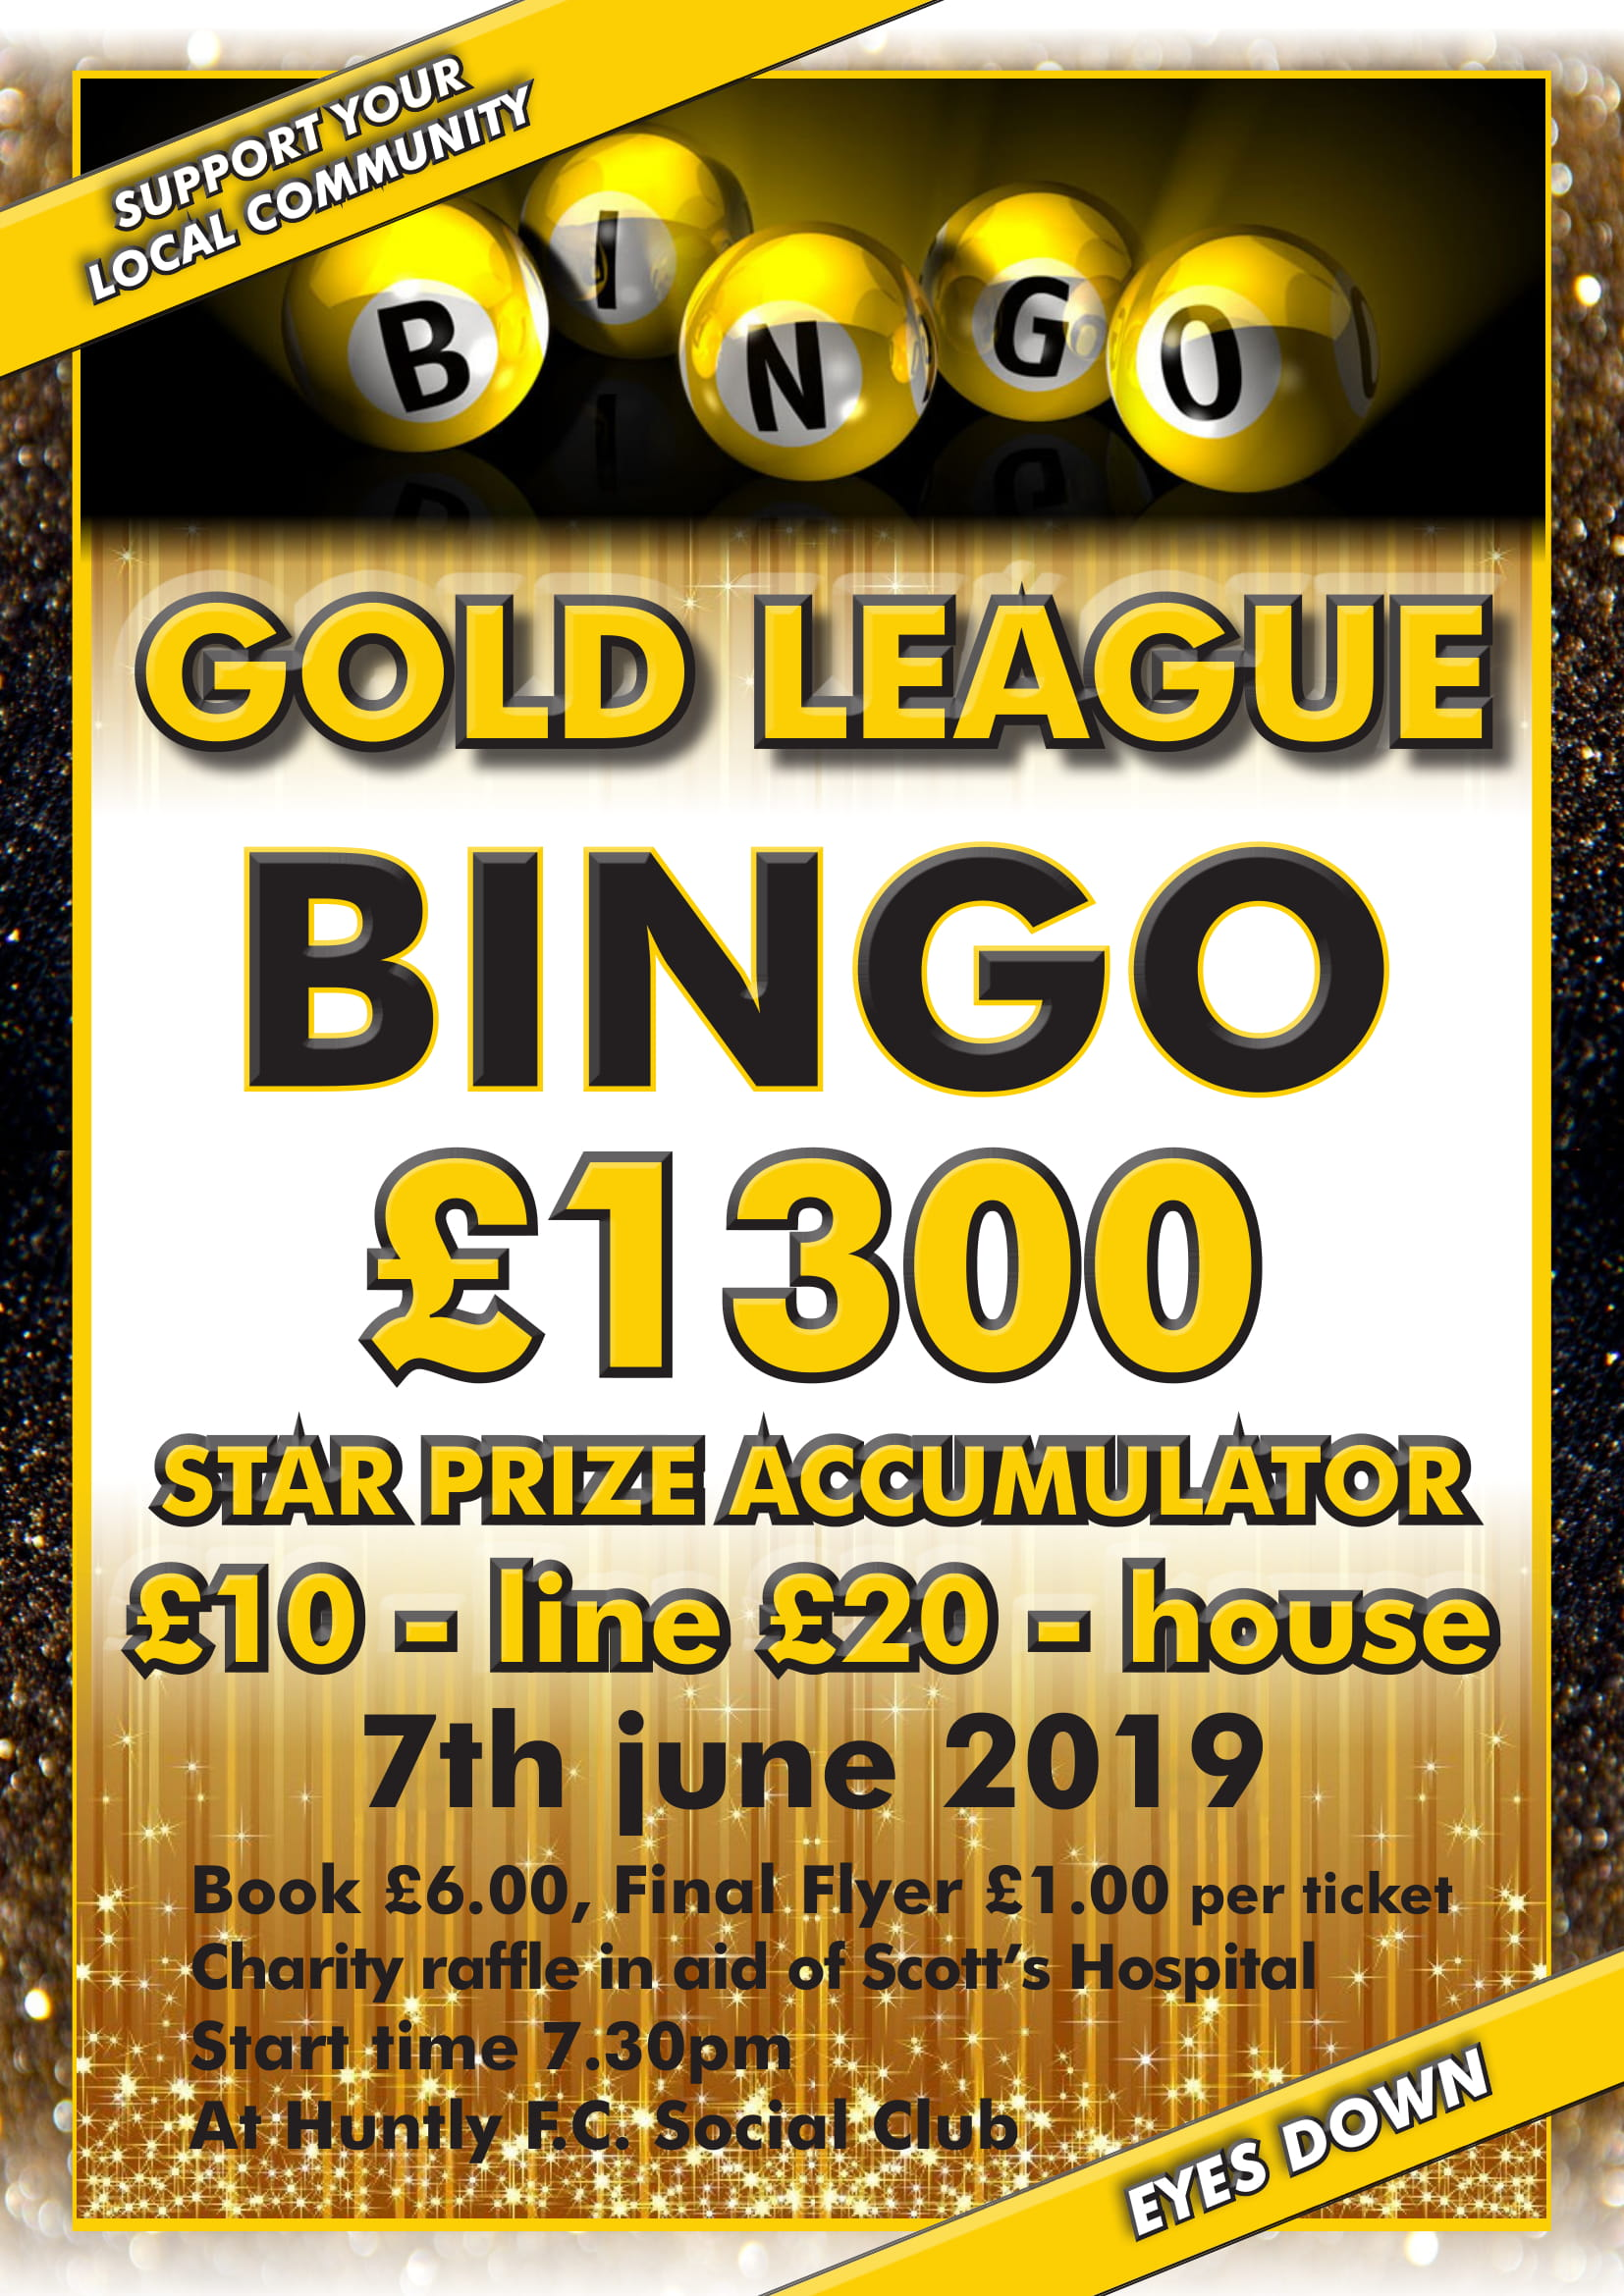 Gold League Bingo: £1300 star prize accumulator